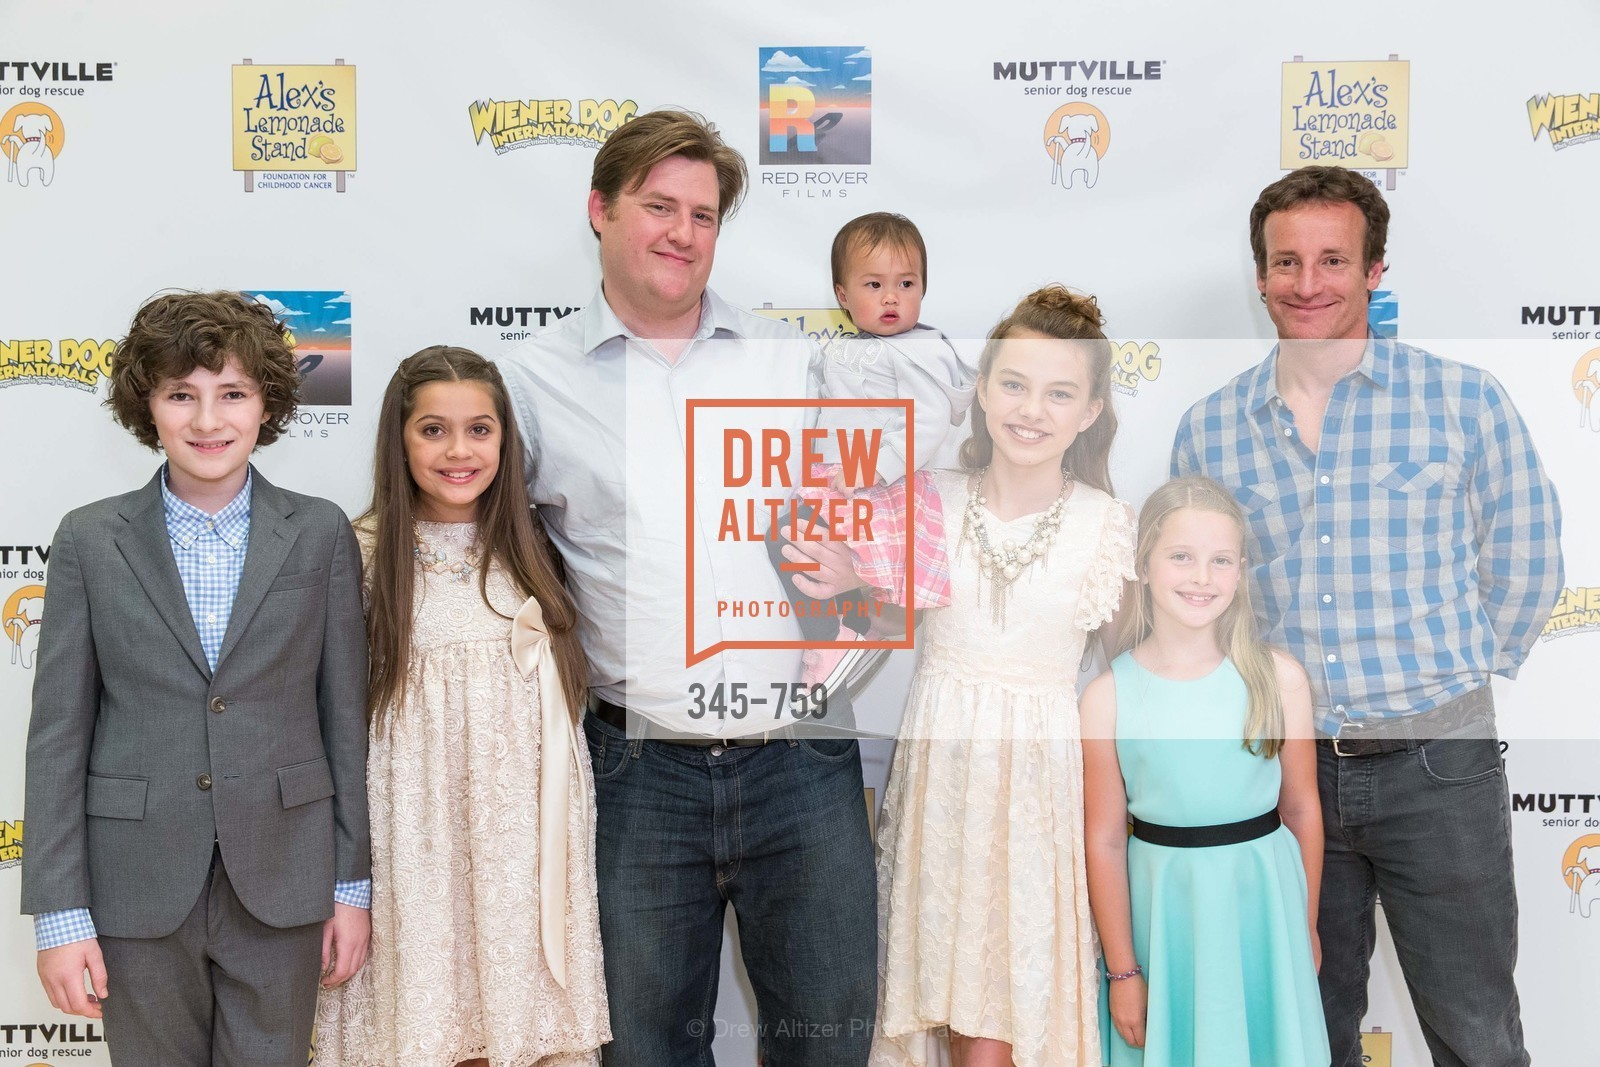 Julian Feder, Emmy Perry, Kevan Peterson, Allegra Peterson, Caitlin Carmichael, Daisy Traina, Todd Traina, WEINER DOG, The Movie, Screening, US, May 31st, 2015,Drew Altizer, Drew Altizer Photography, full-service agency, private events, San Francisco photographer, photographer california